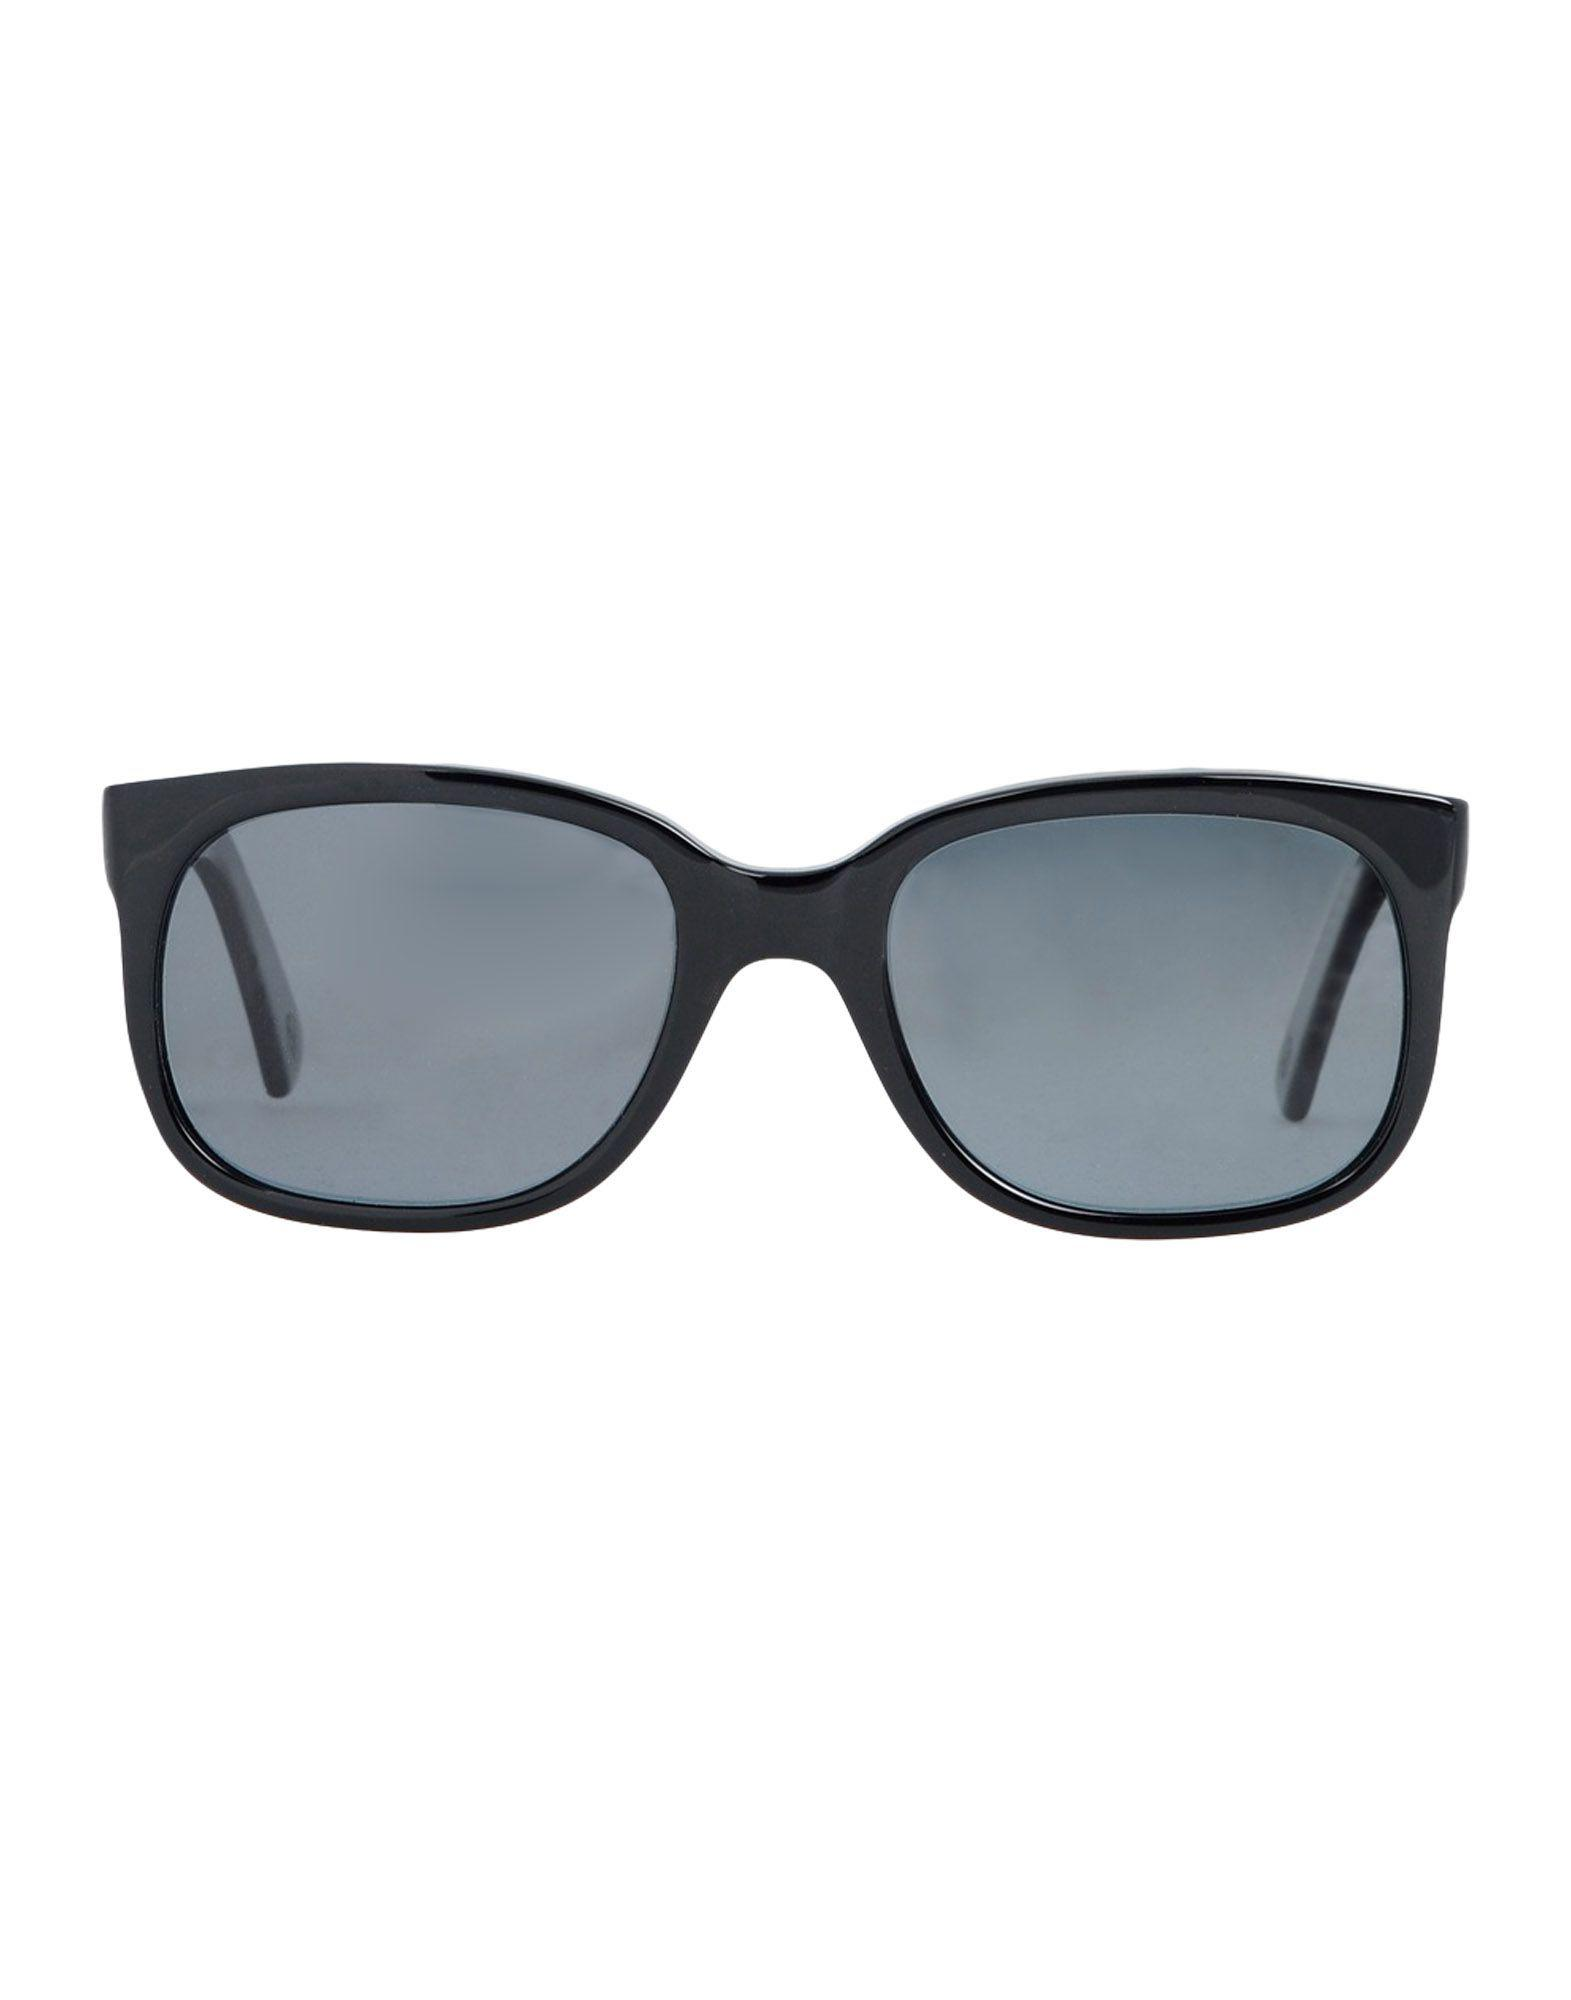 44b2ad9132 Kingsman Sunglasses in Black for Men - Lyst